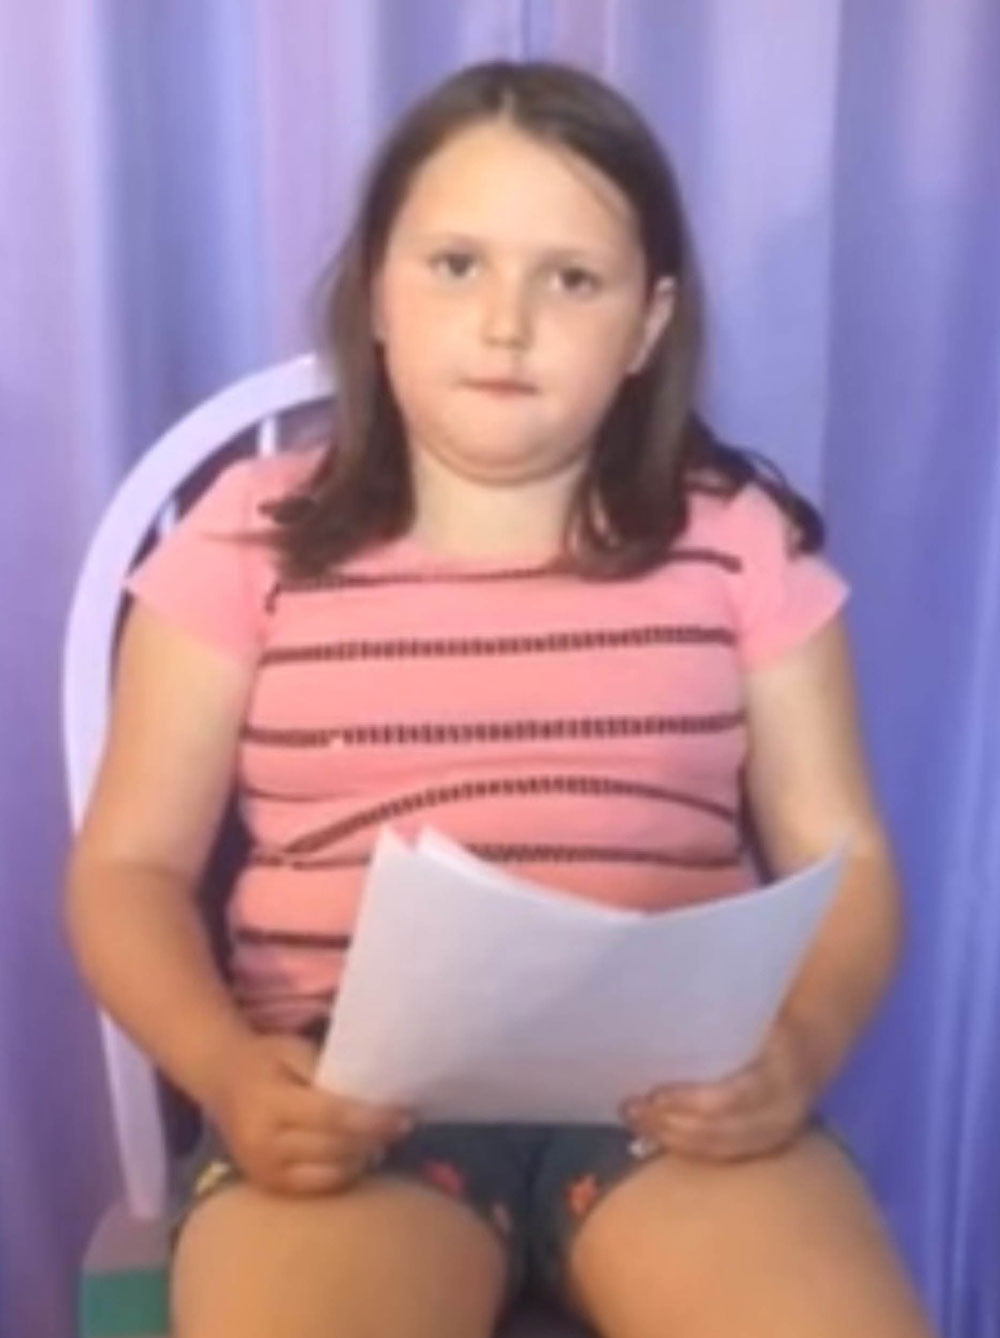 Abby read out her note to camera